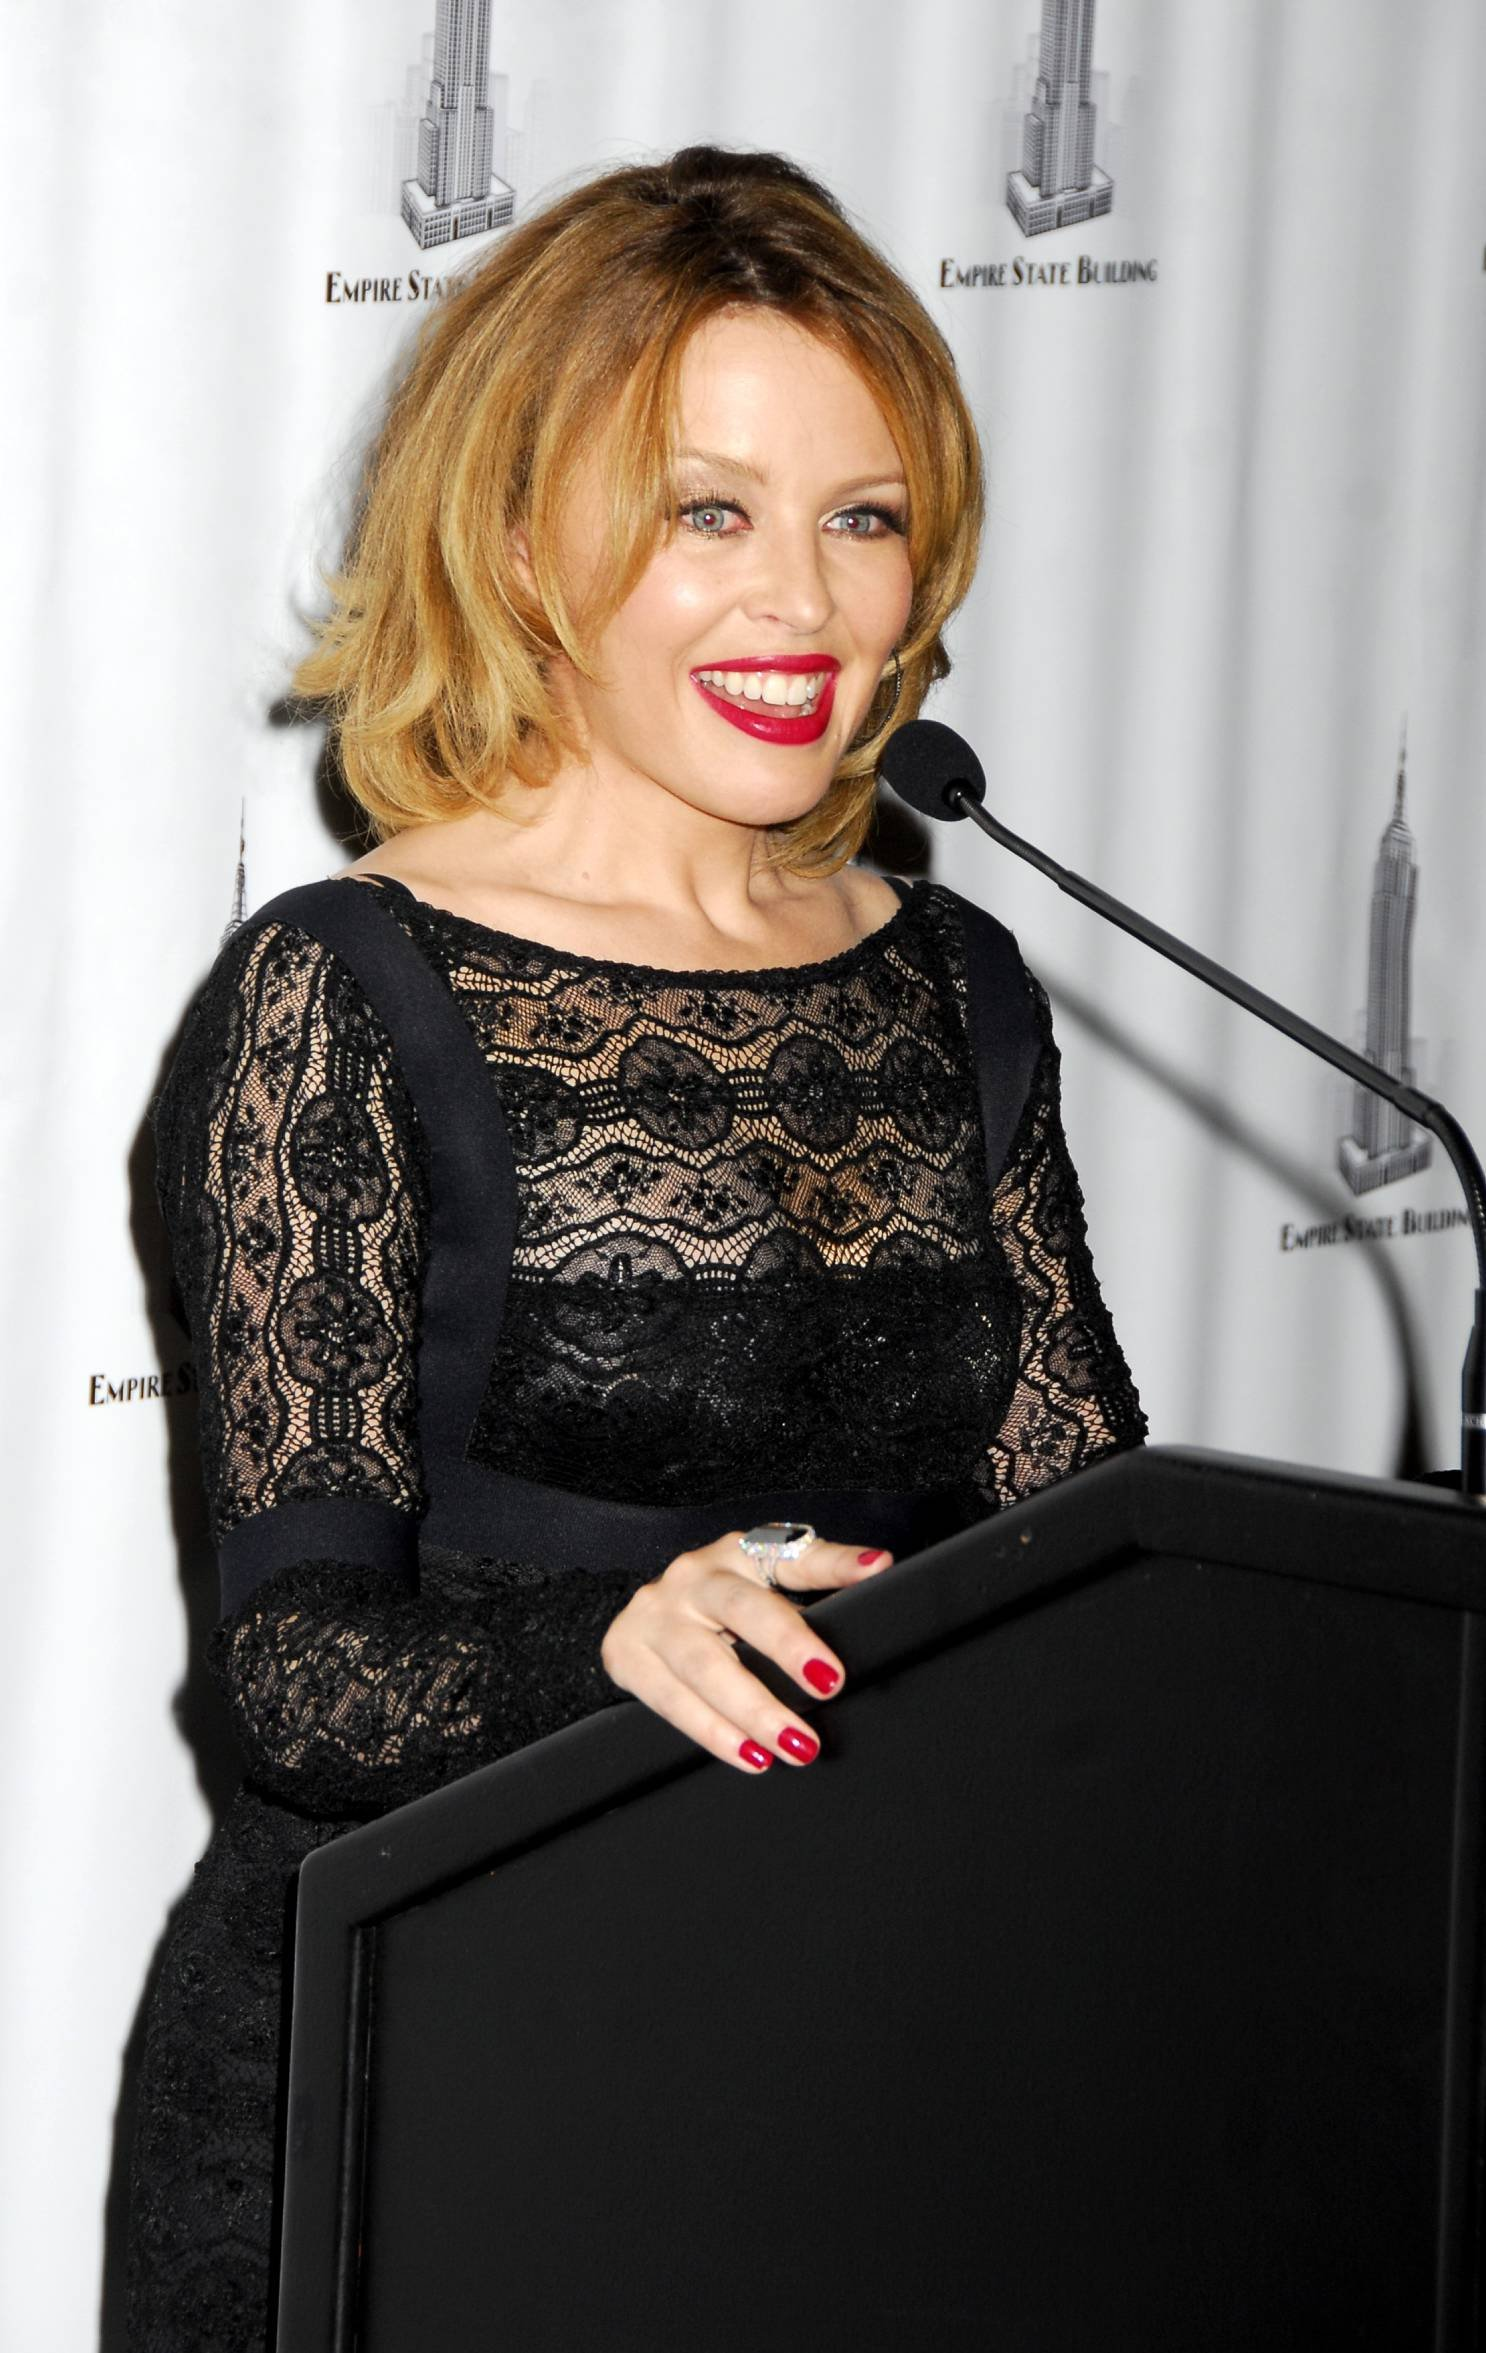 28938_Celebutopia-Kylie_Minogue_lights_The_Empire_State_Building-13_122_1067lo.jpg